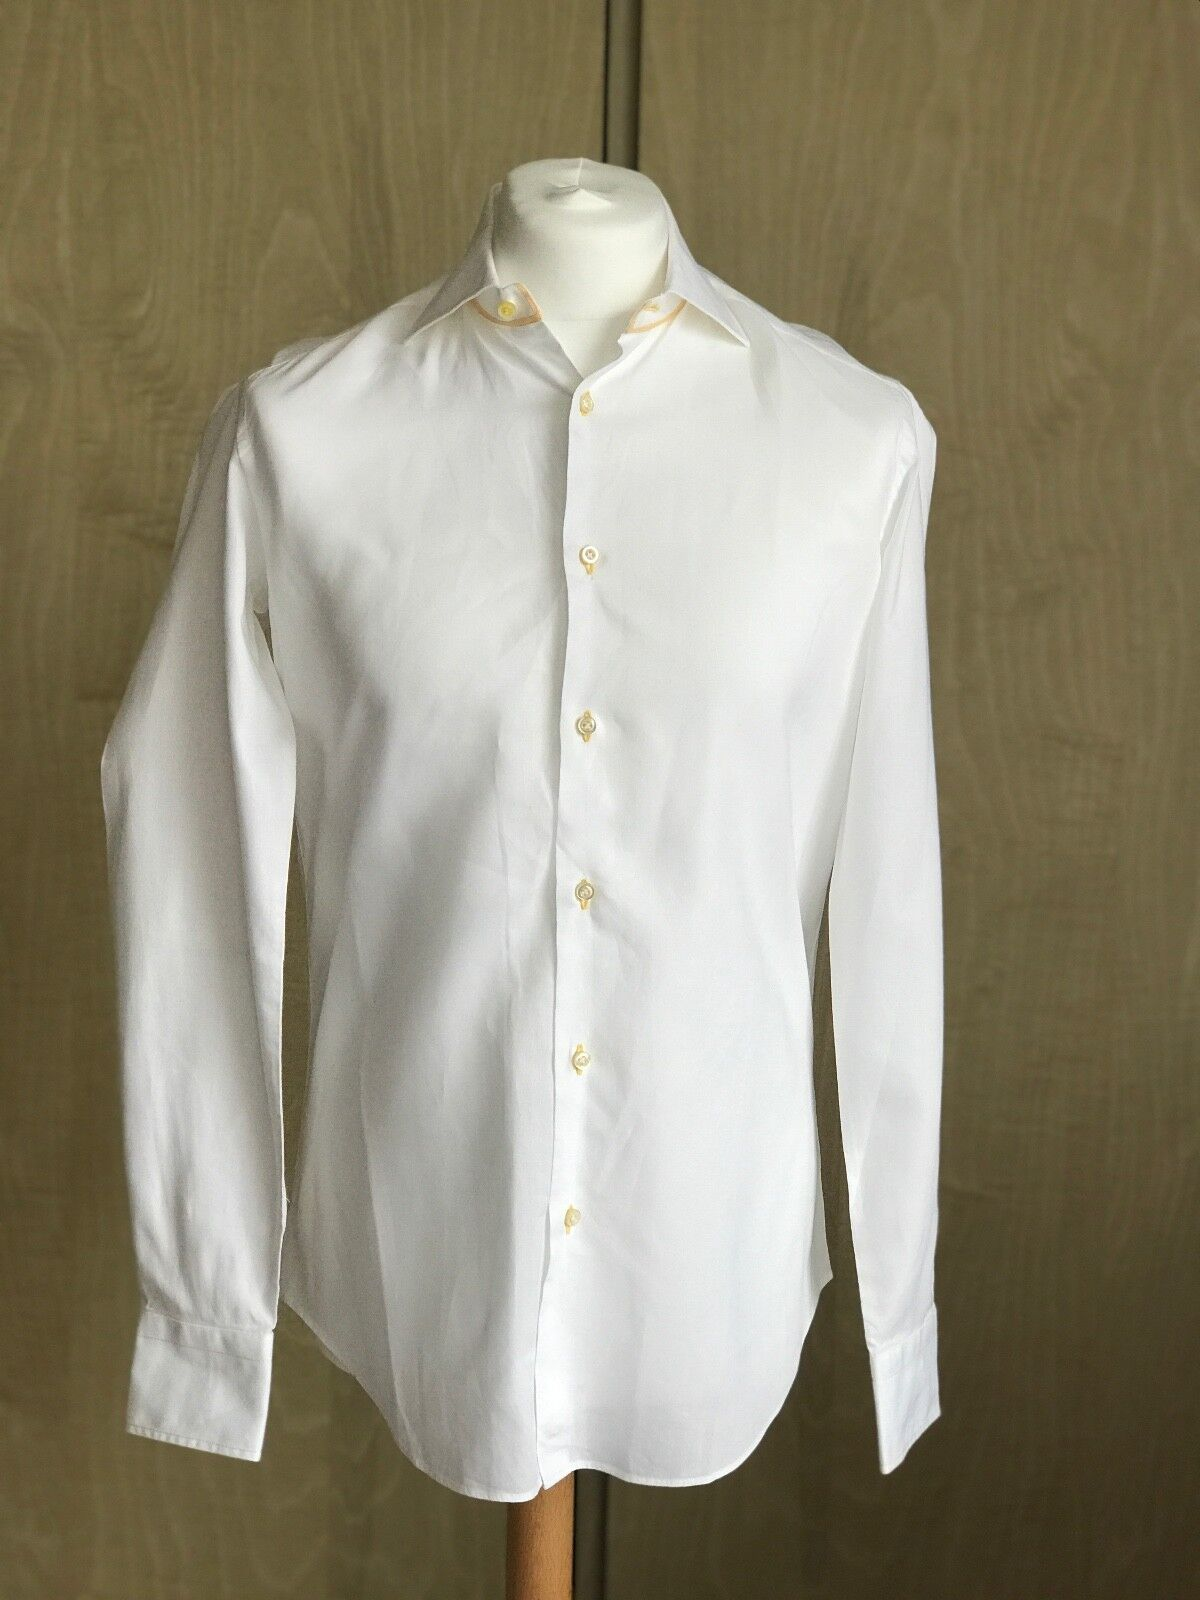 PAL ZILERI Men Cotton Shirt, White with Yellow Stitches, Size 15.5